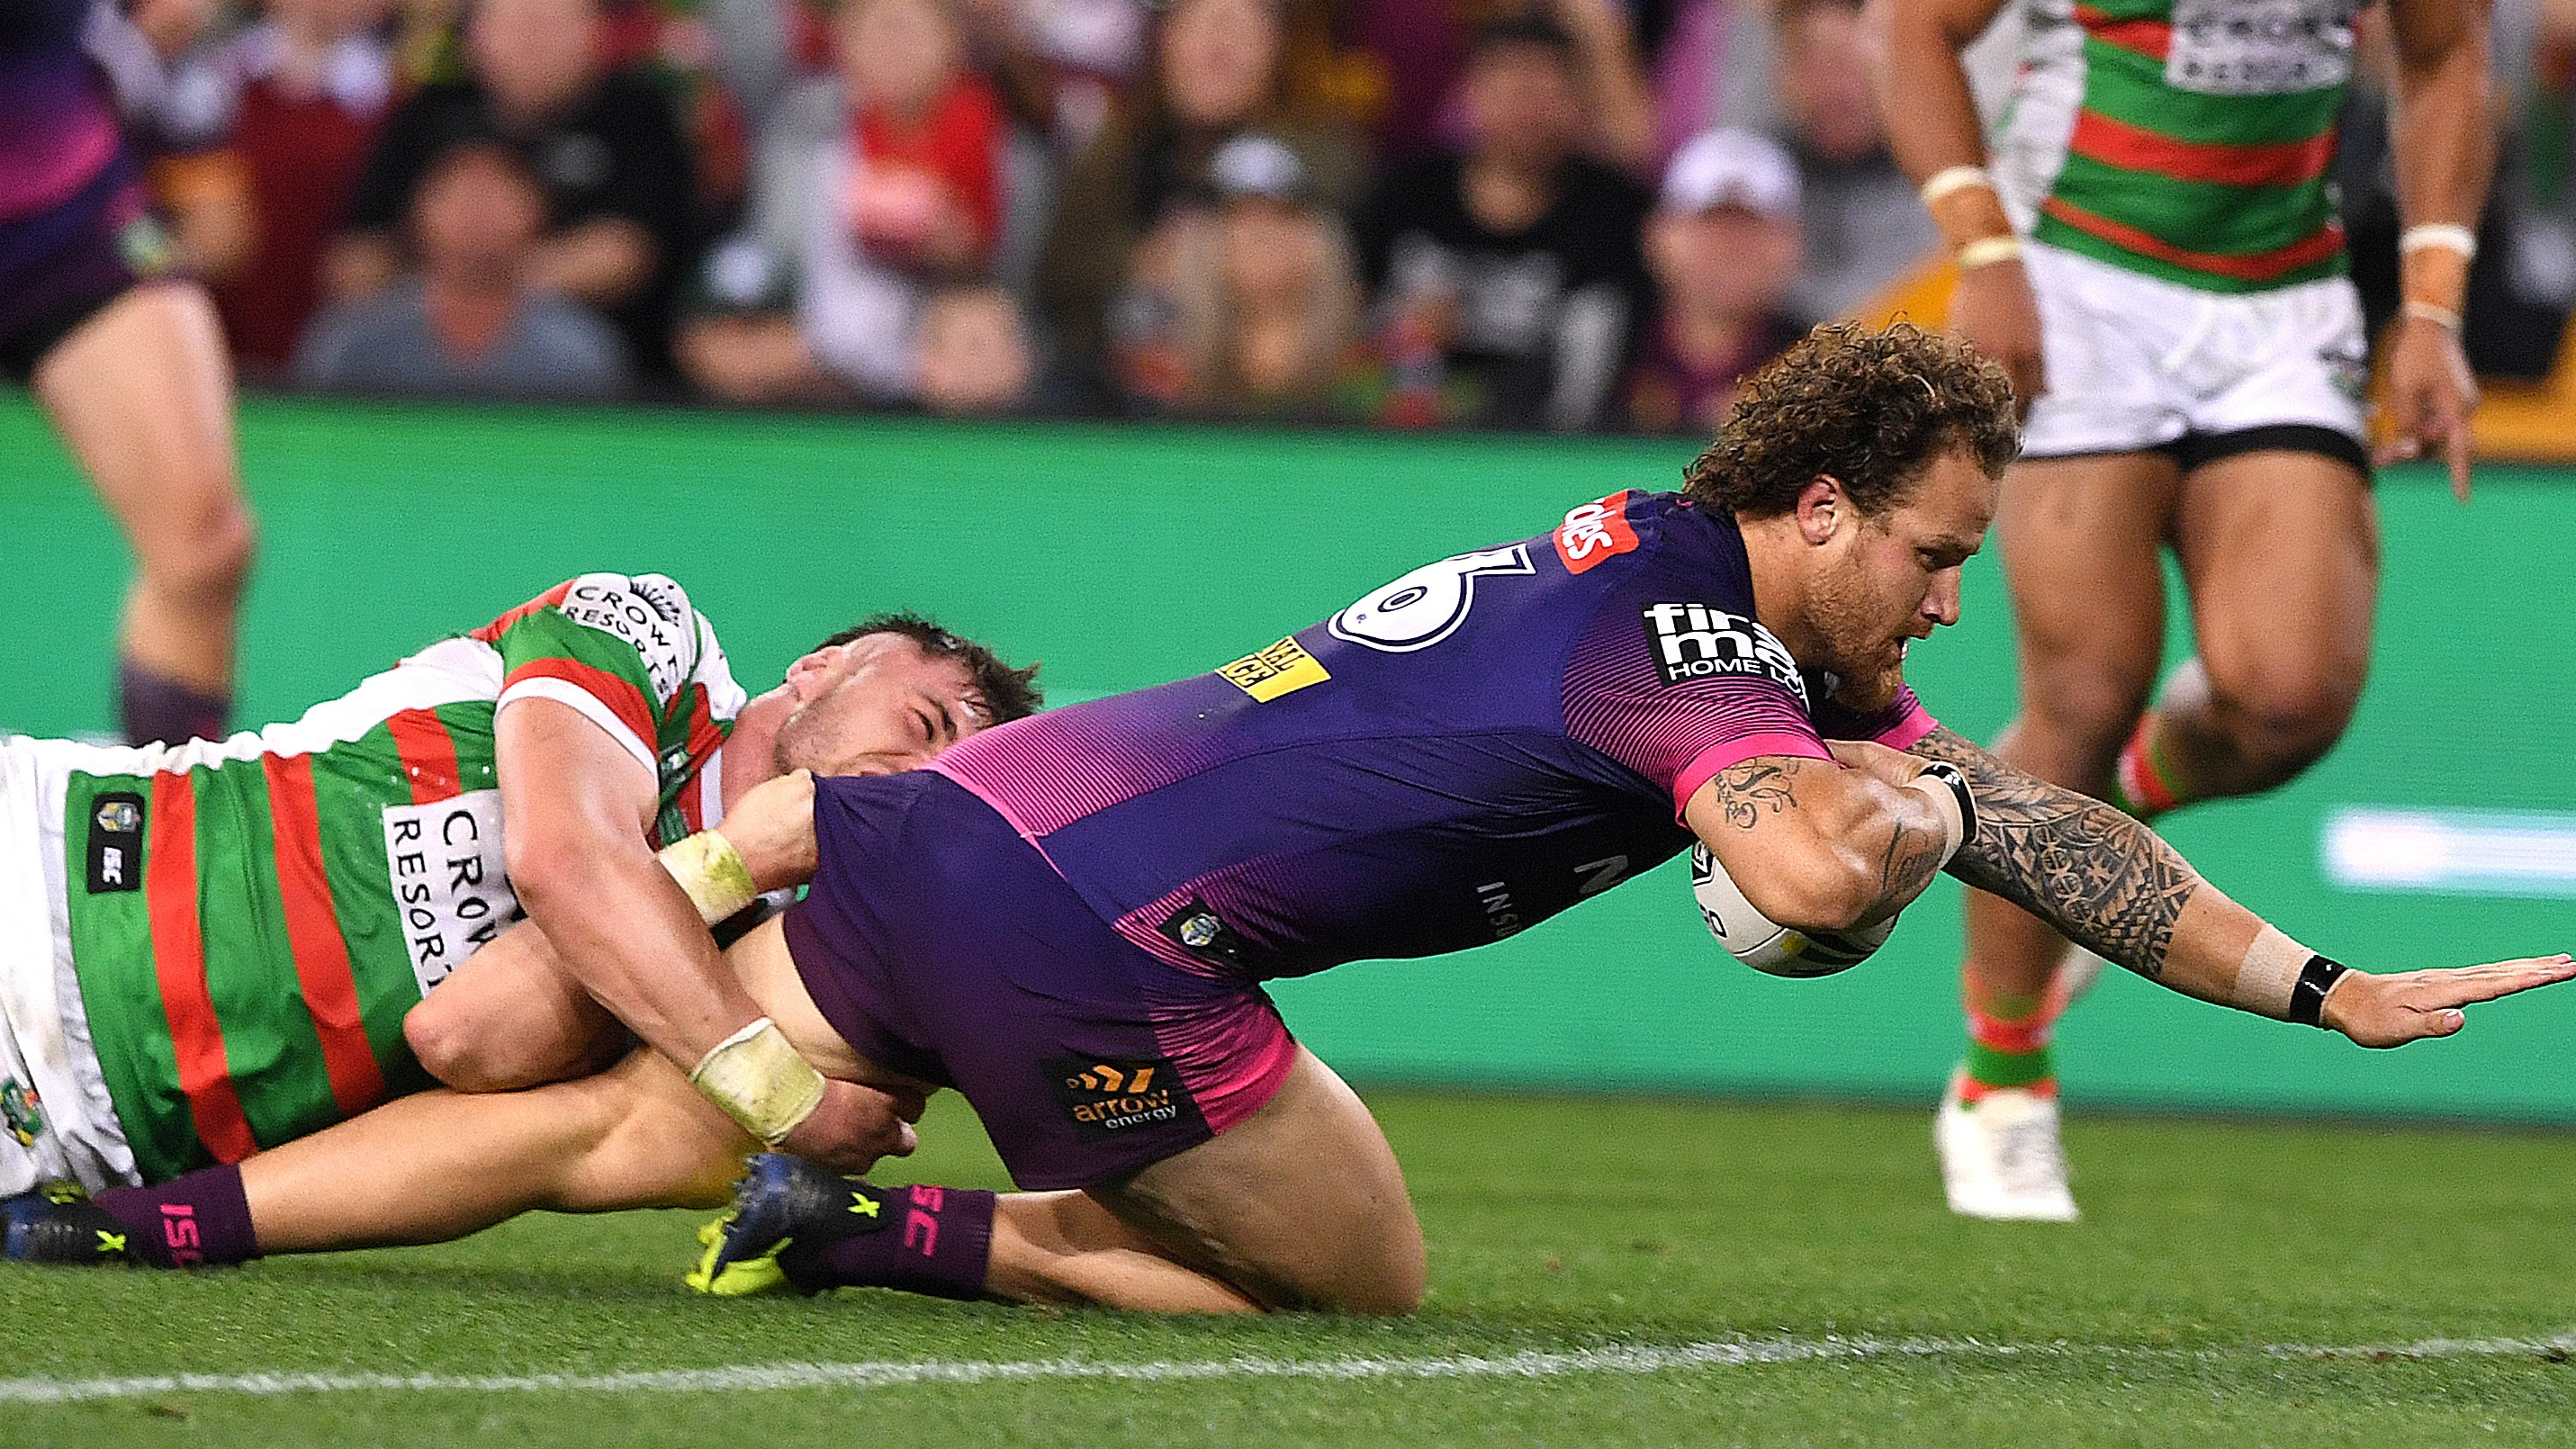 NRL Highlights: Brisbane Broncos v South Sydney Rabbitohs - Round 23